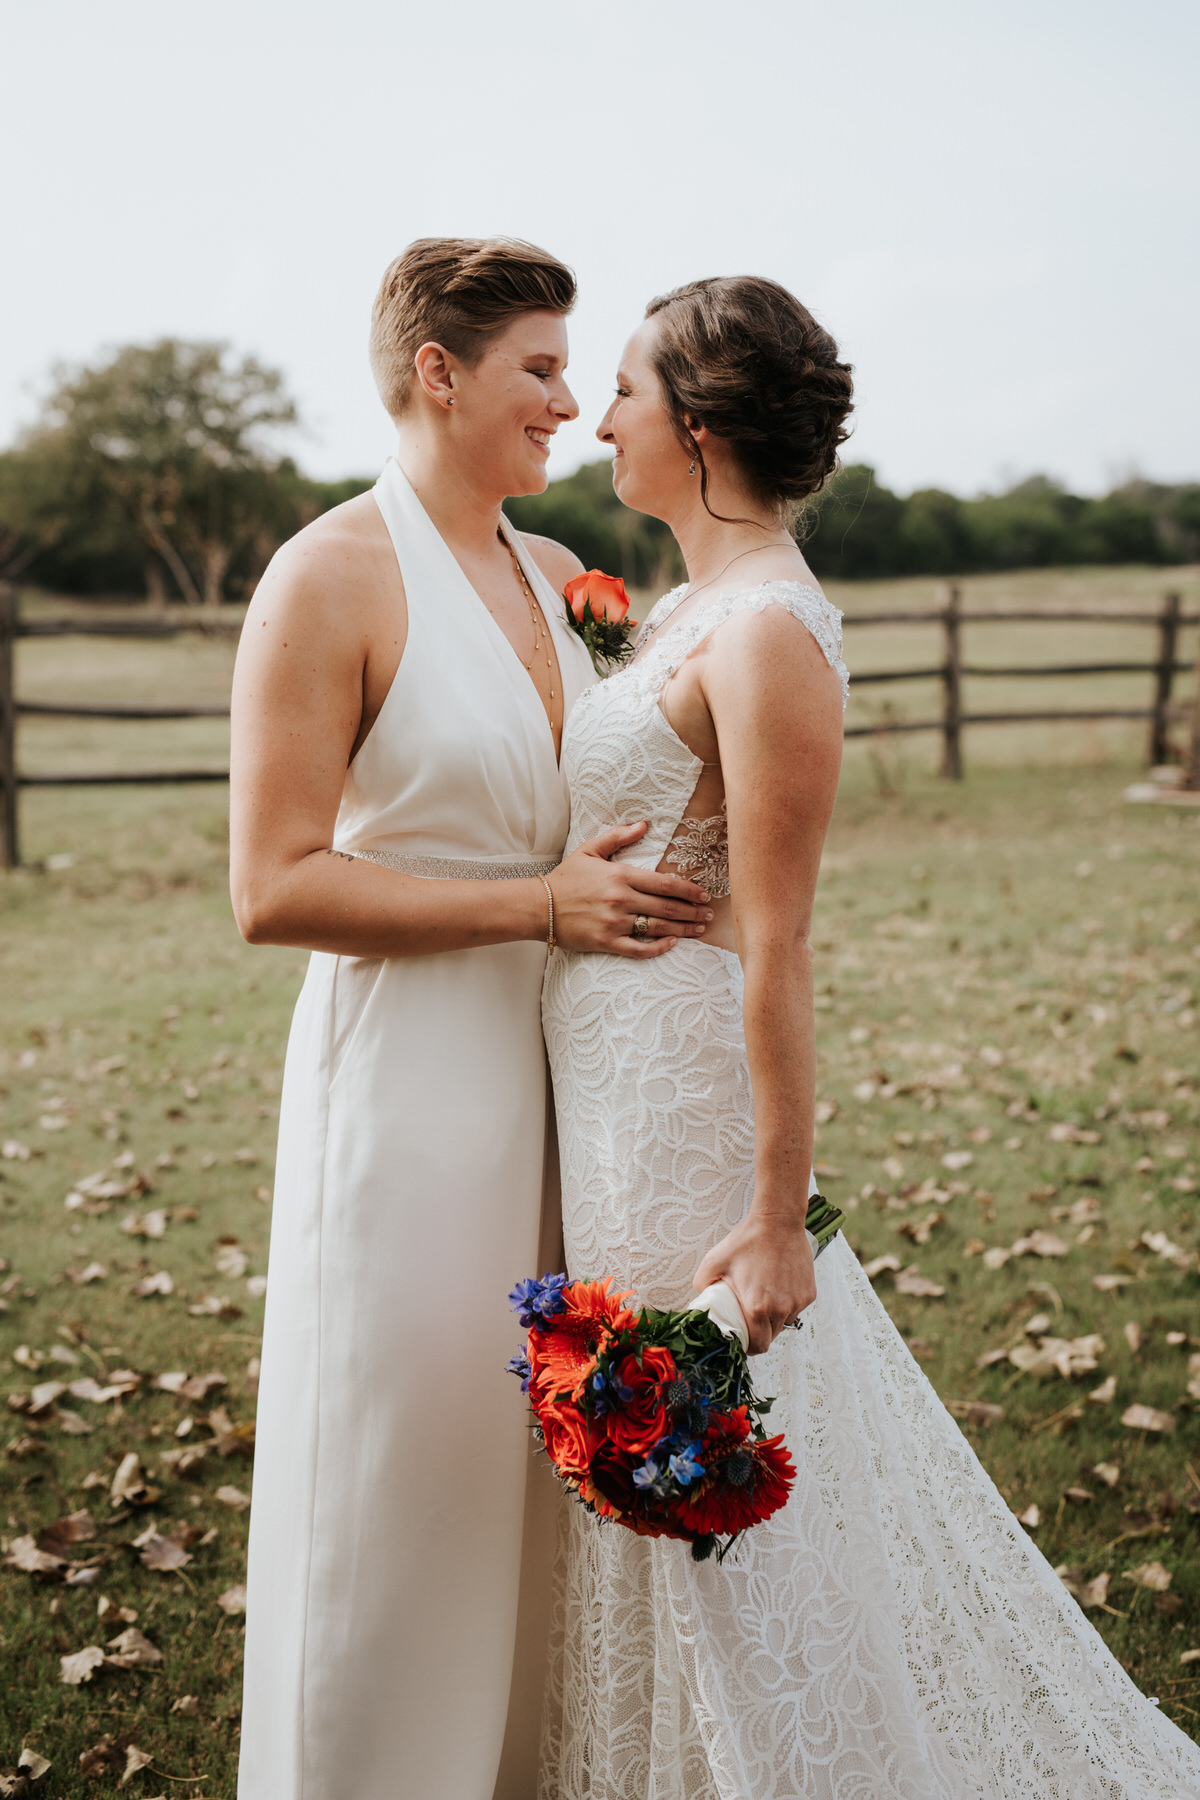 Happy lesbian couple at their wedding